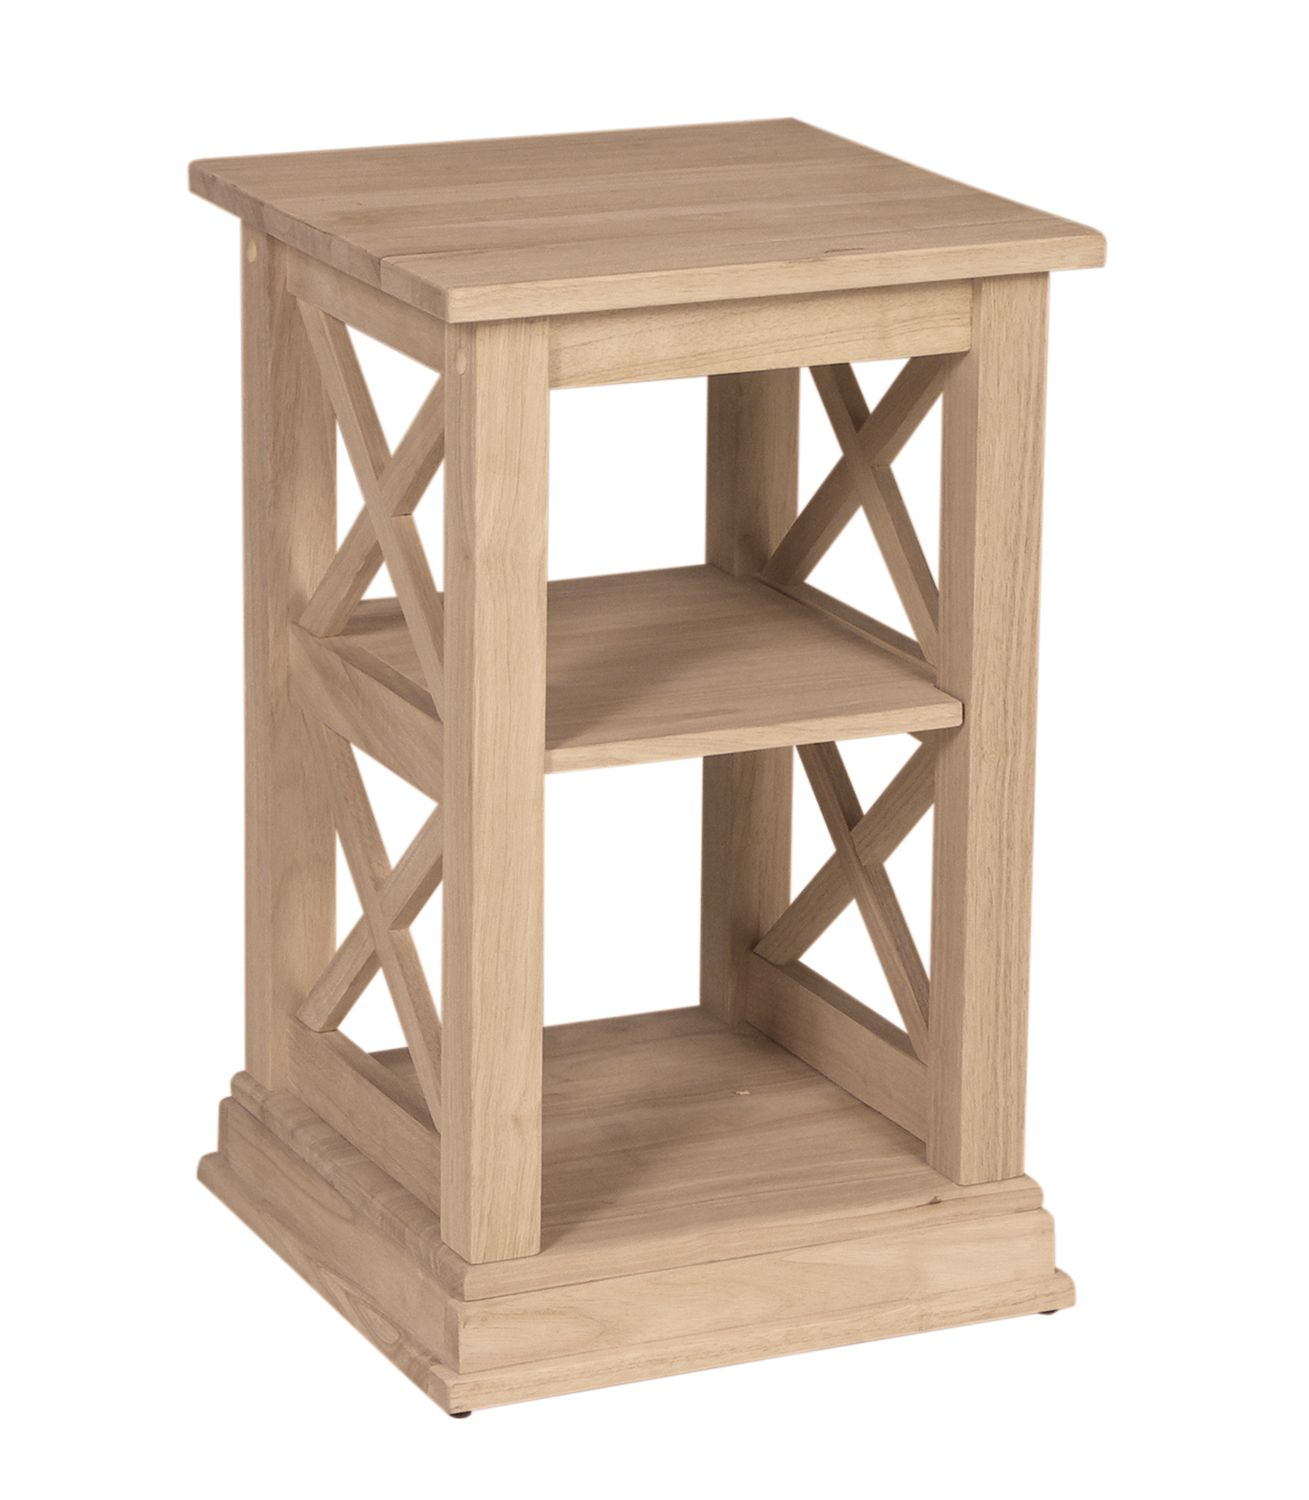 solid wood accent table update your home with natural tables furnishings naturalwoodfurnishings solidwoodfurniture diy customfurniture iron frame queen small bedroom decorating